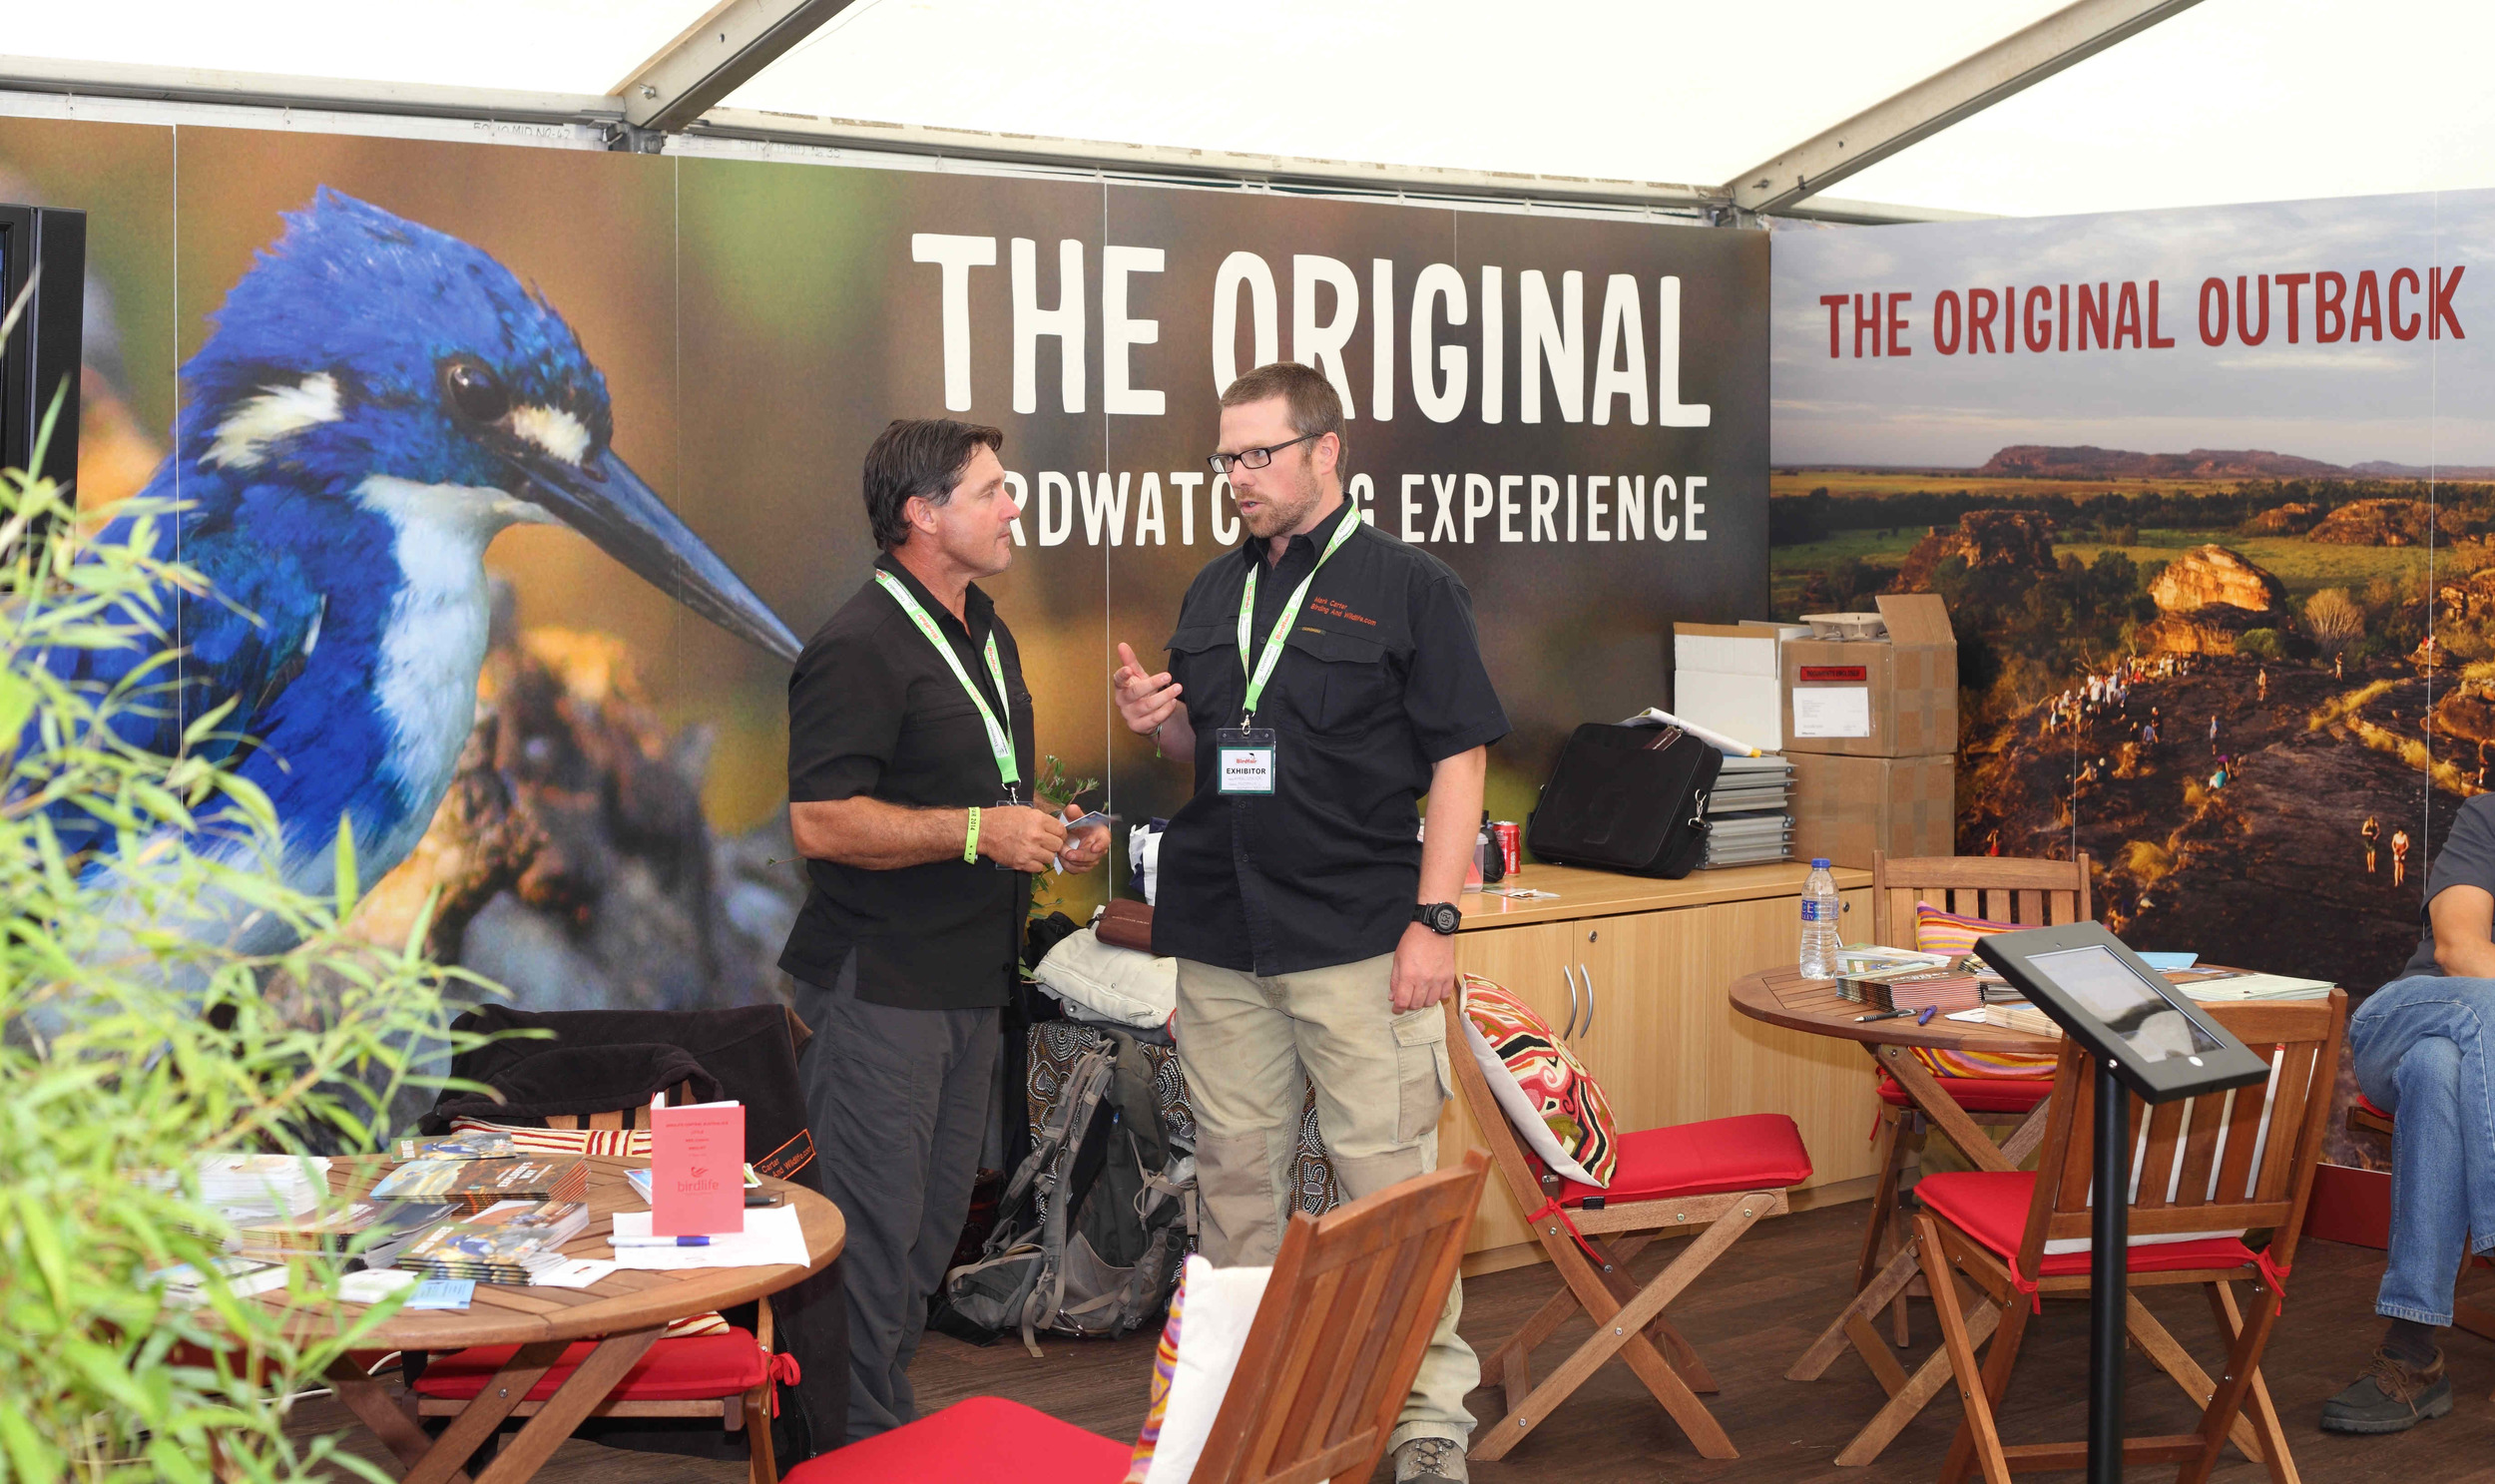 If you want to talk turkey with the Outback experts you have to drop in on the NT stand. There's free stuff and prizes!